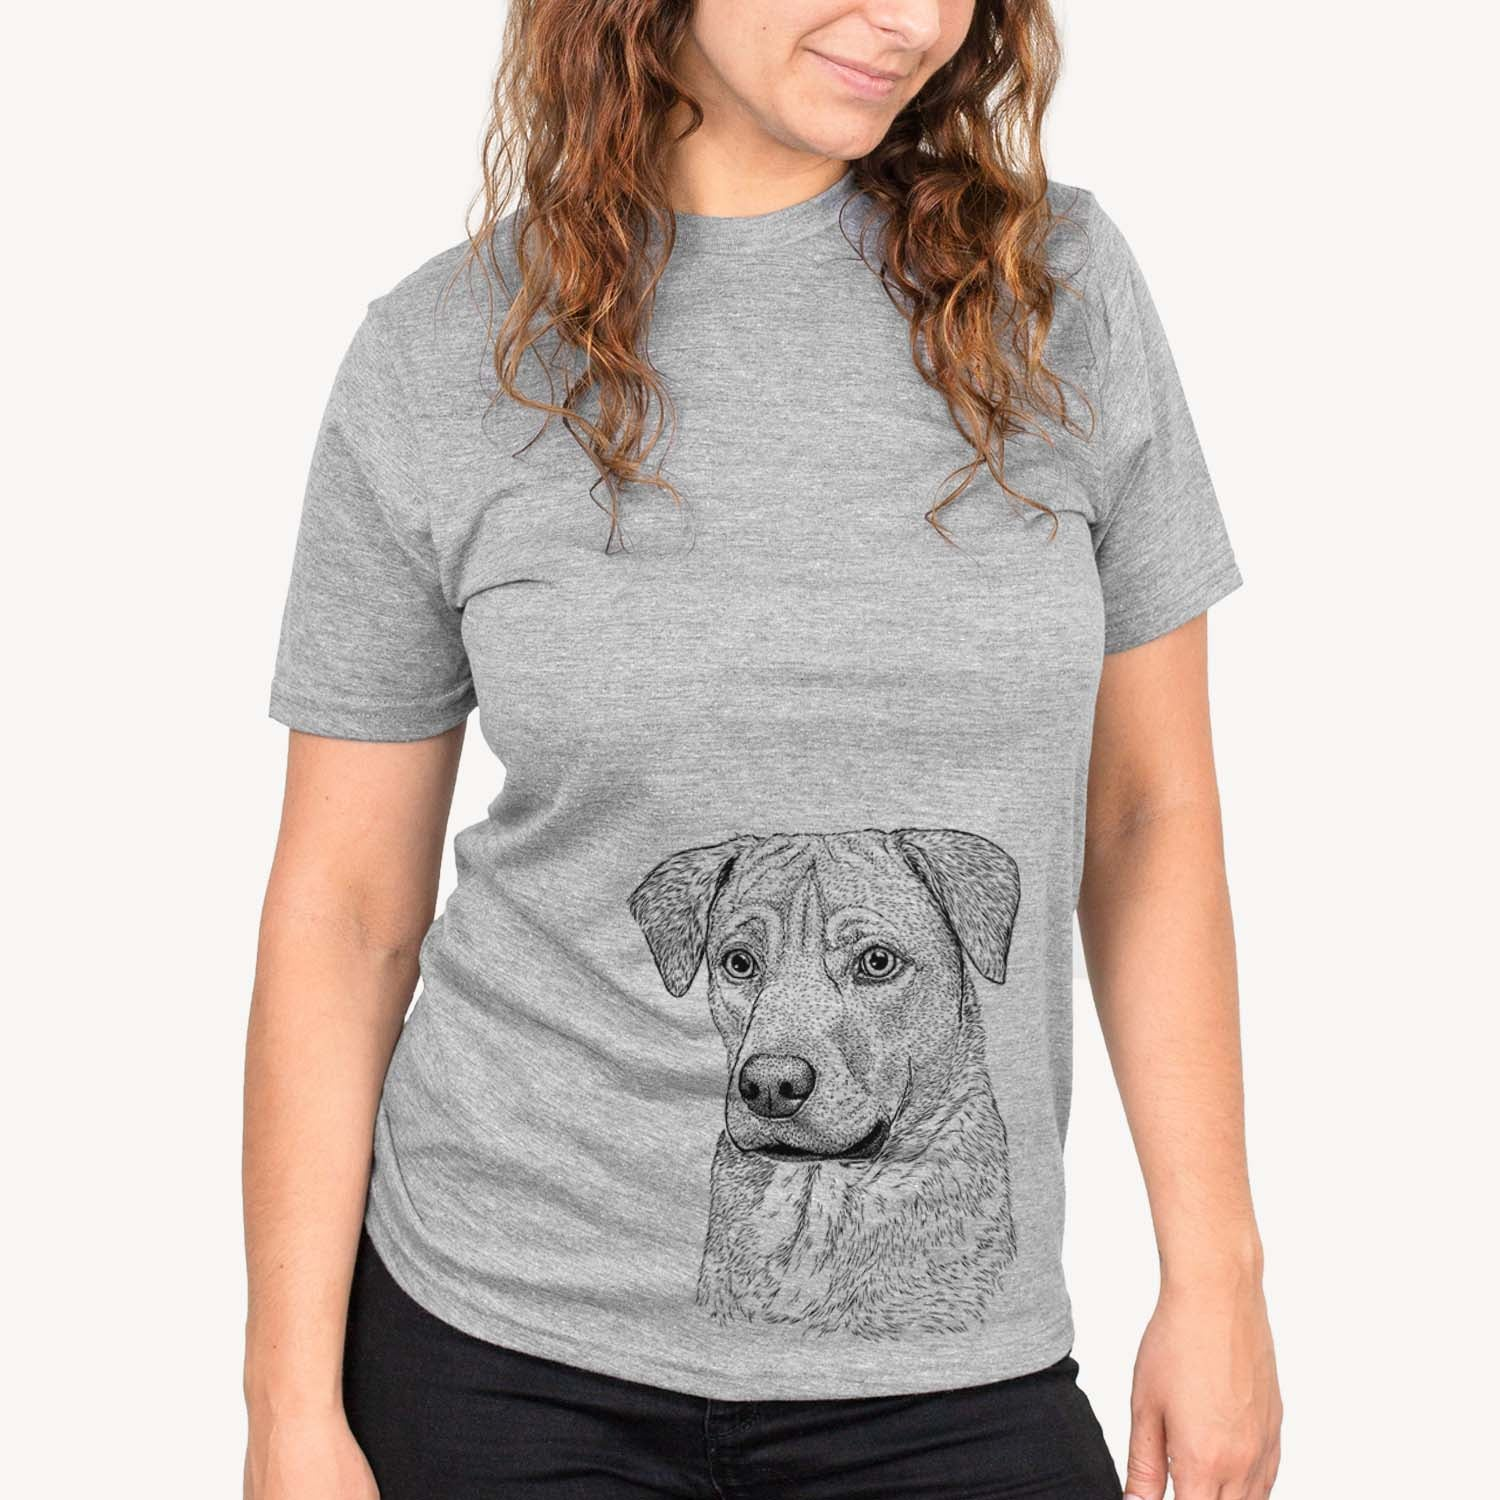 Feta the Mixed Breed - Unisex Crewneck